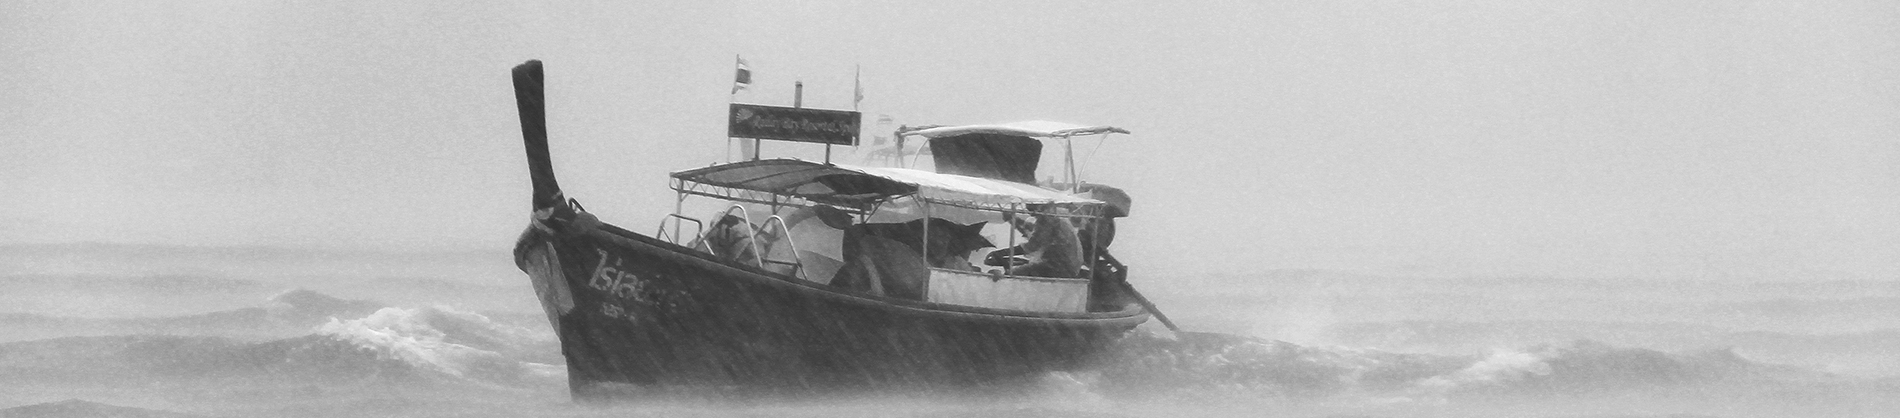 A black and white photo of a boat in the middle of a storm